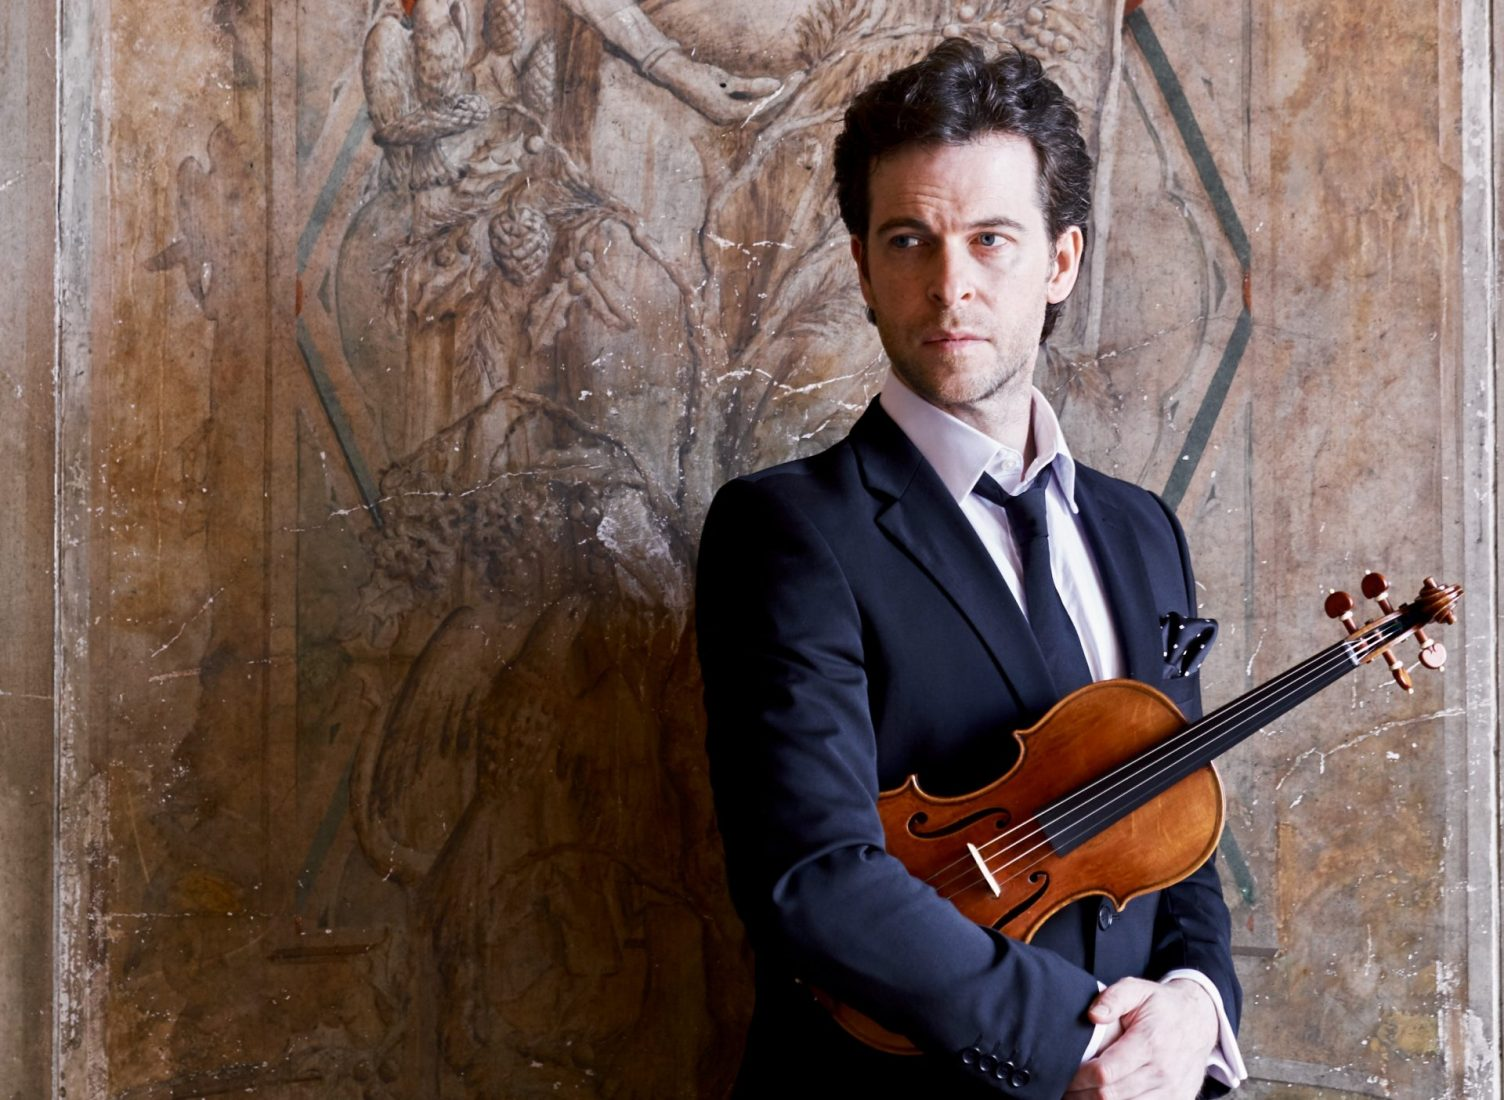 We Can't Wait for Violinist Gregory Harrington's New Album of Standards